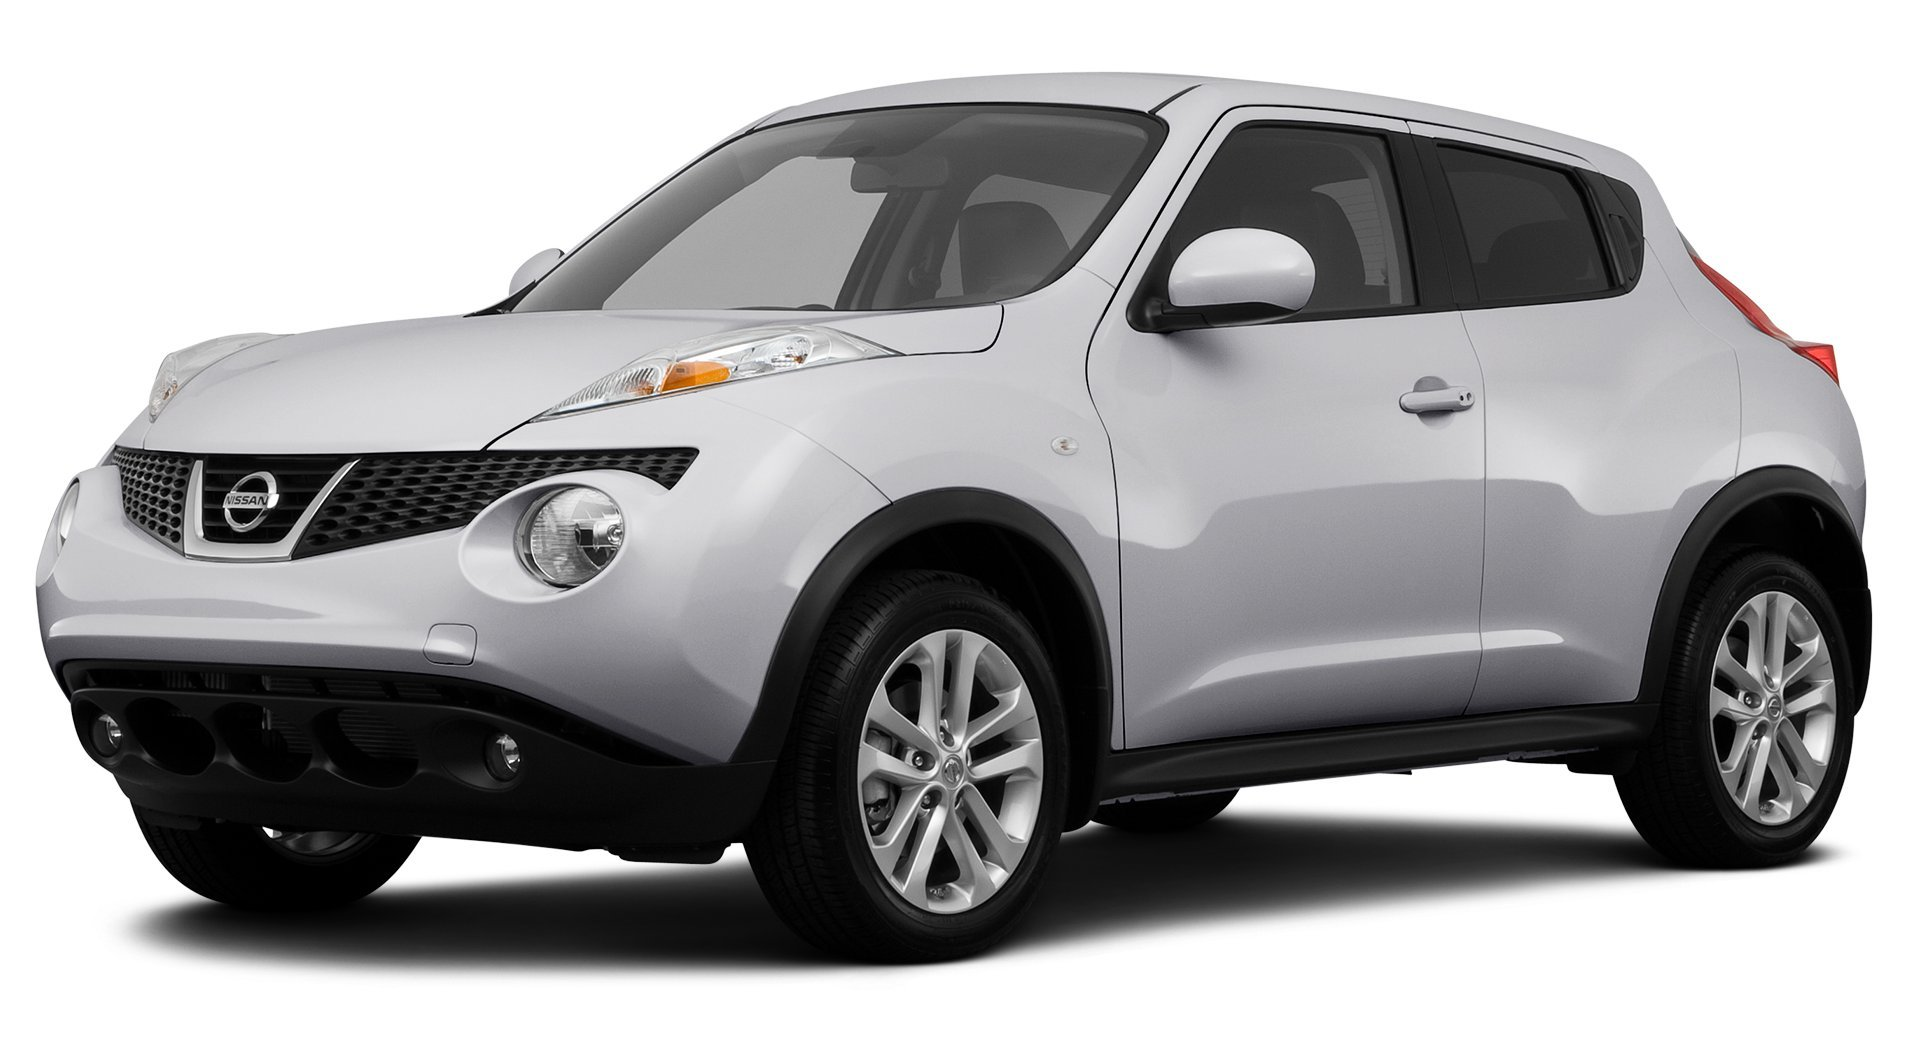 exotic of nissan juke wallpaper nismo car widescreen pictures